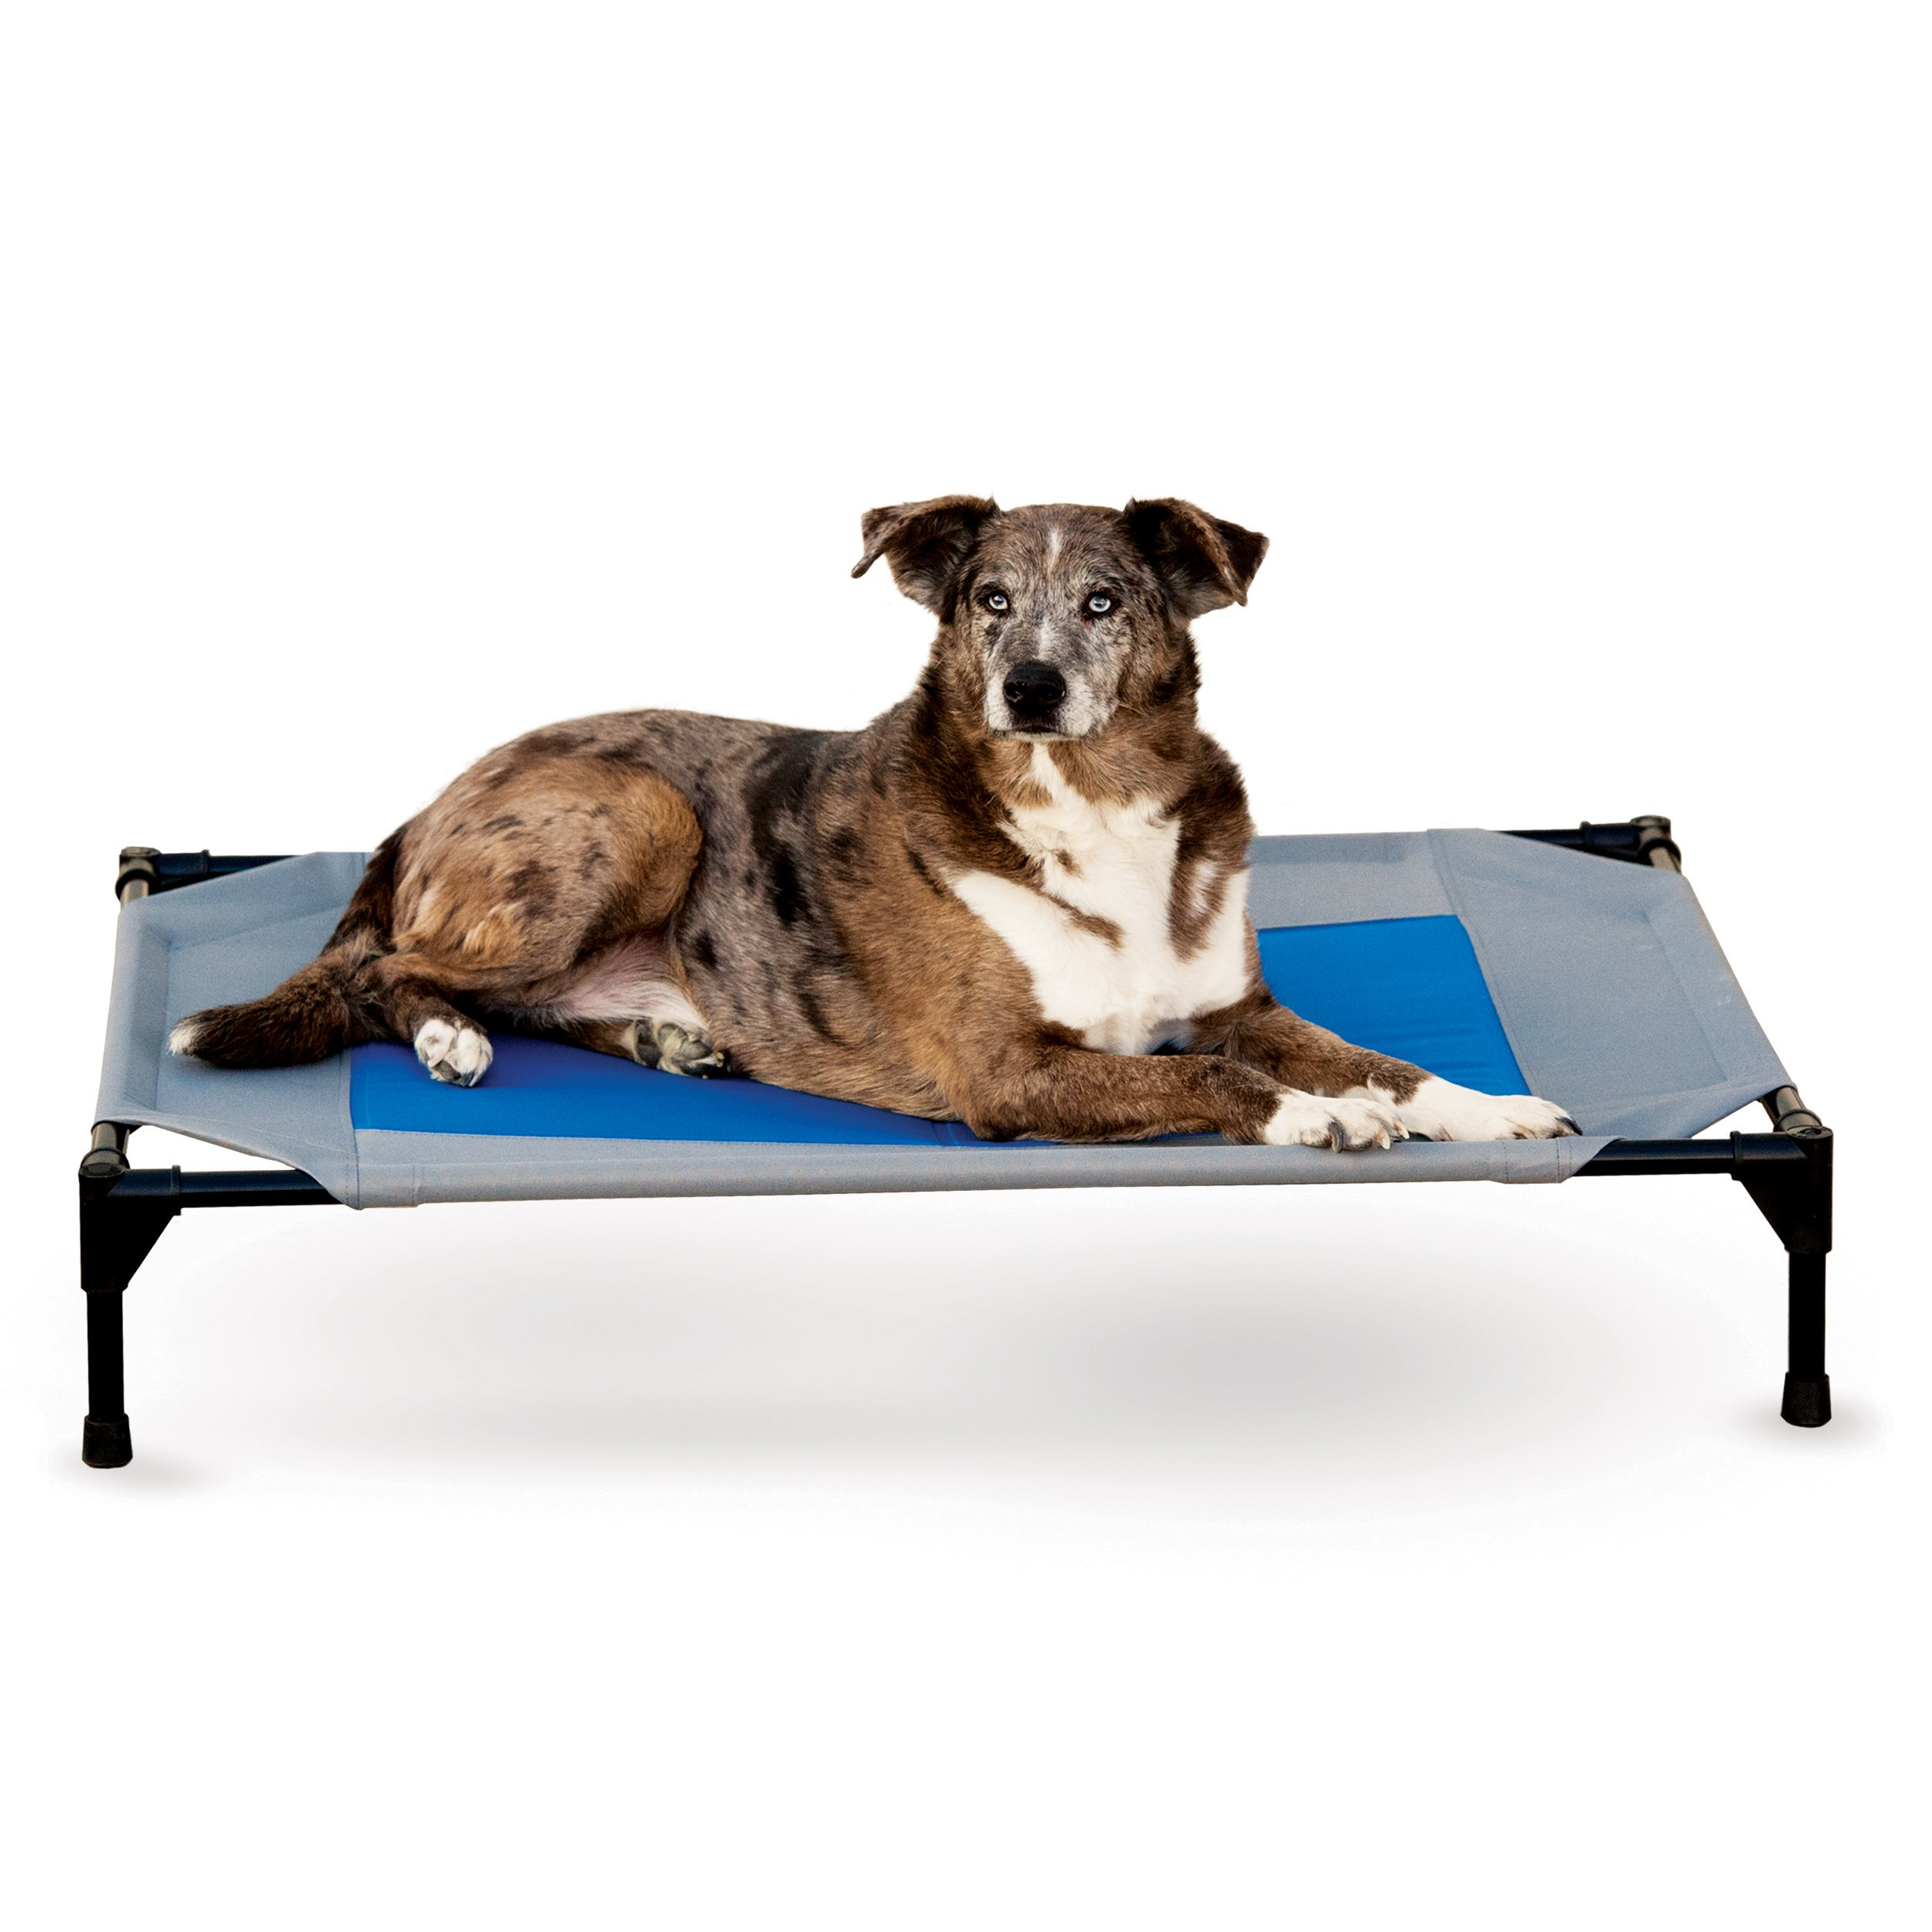 K&H Pet Products Coolin' Pet Cot Elevated Pet Bed Large Gray/Blue 30'' x 42'' x 7''